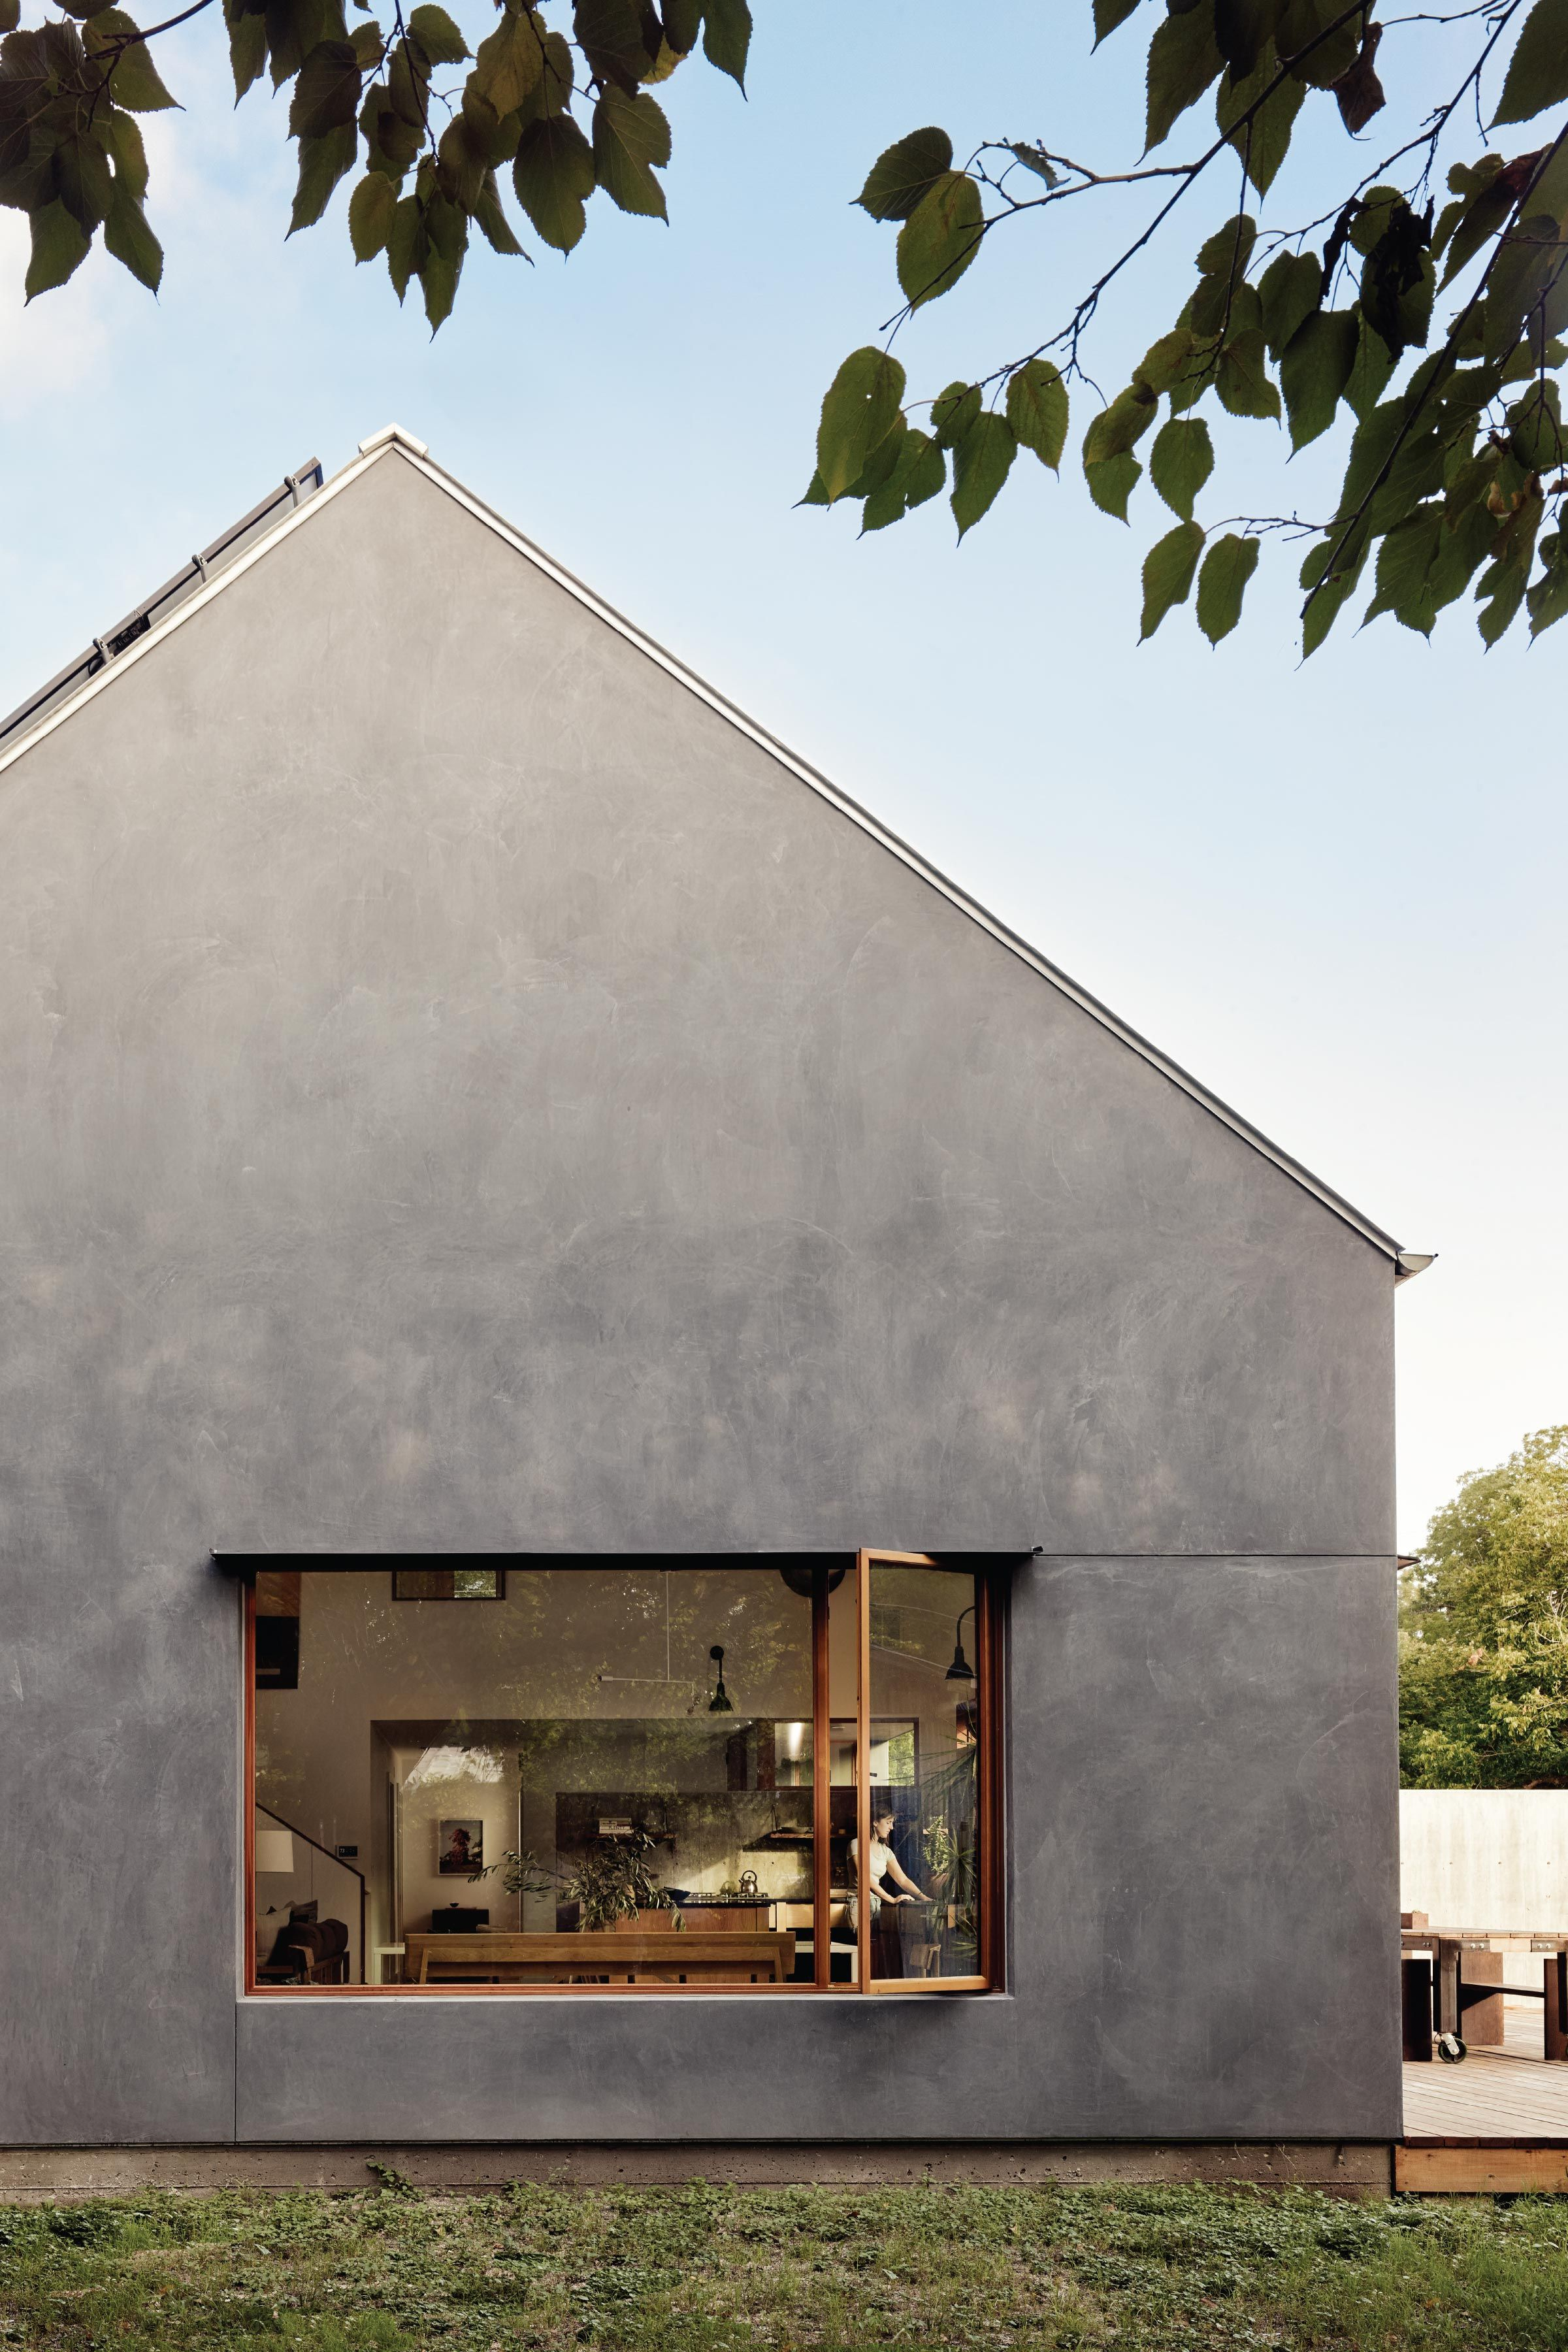 22+ Gable side of house ideas in 2021